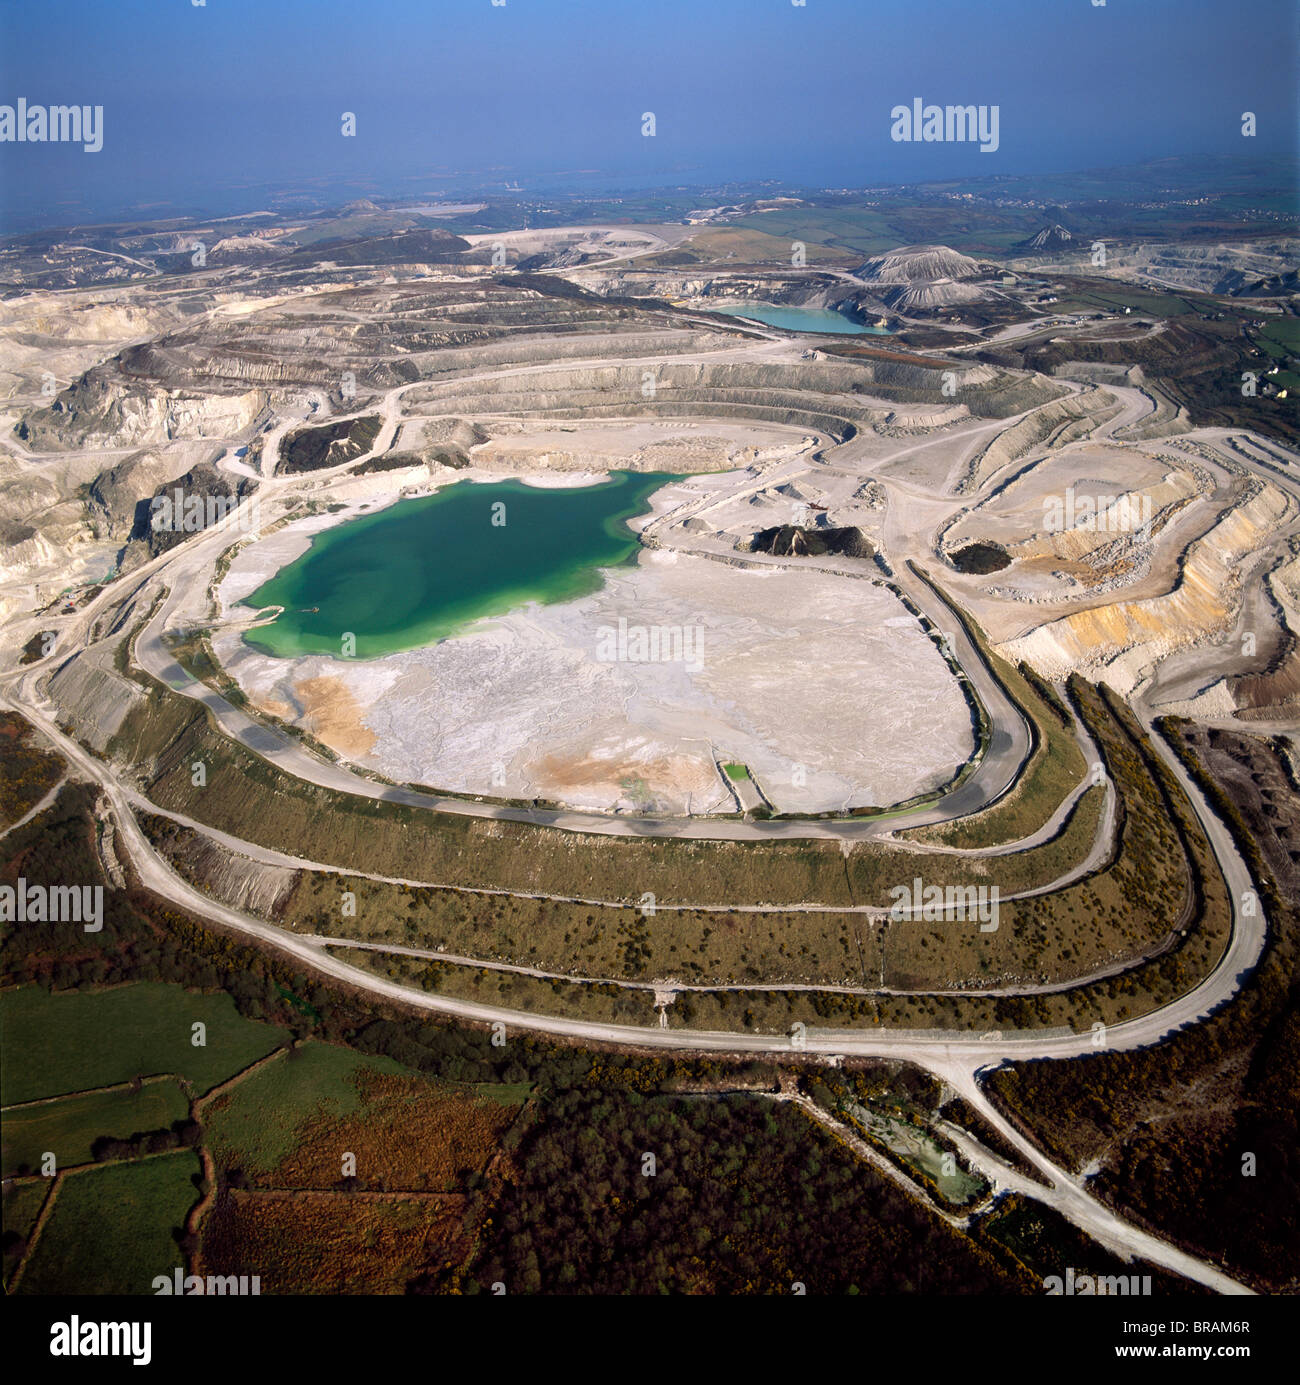 Aerial image of China Clay (Kaolin) Quarries, St. Austell, Cornwall, England, United Kingdom, Europe - Stock Image